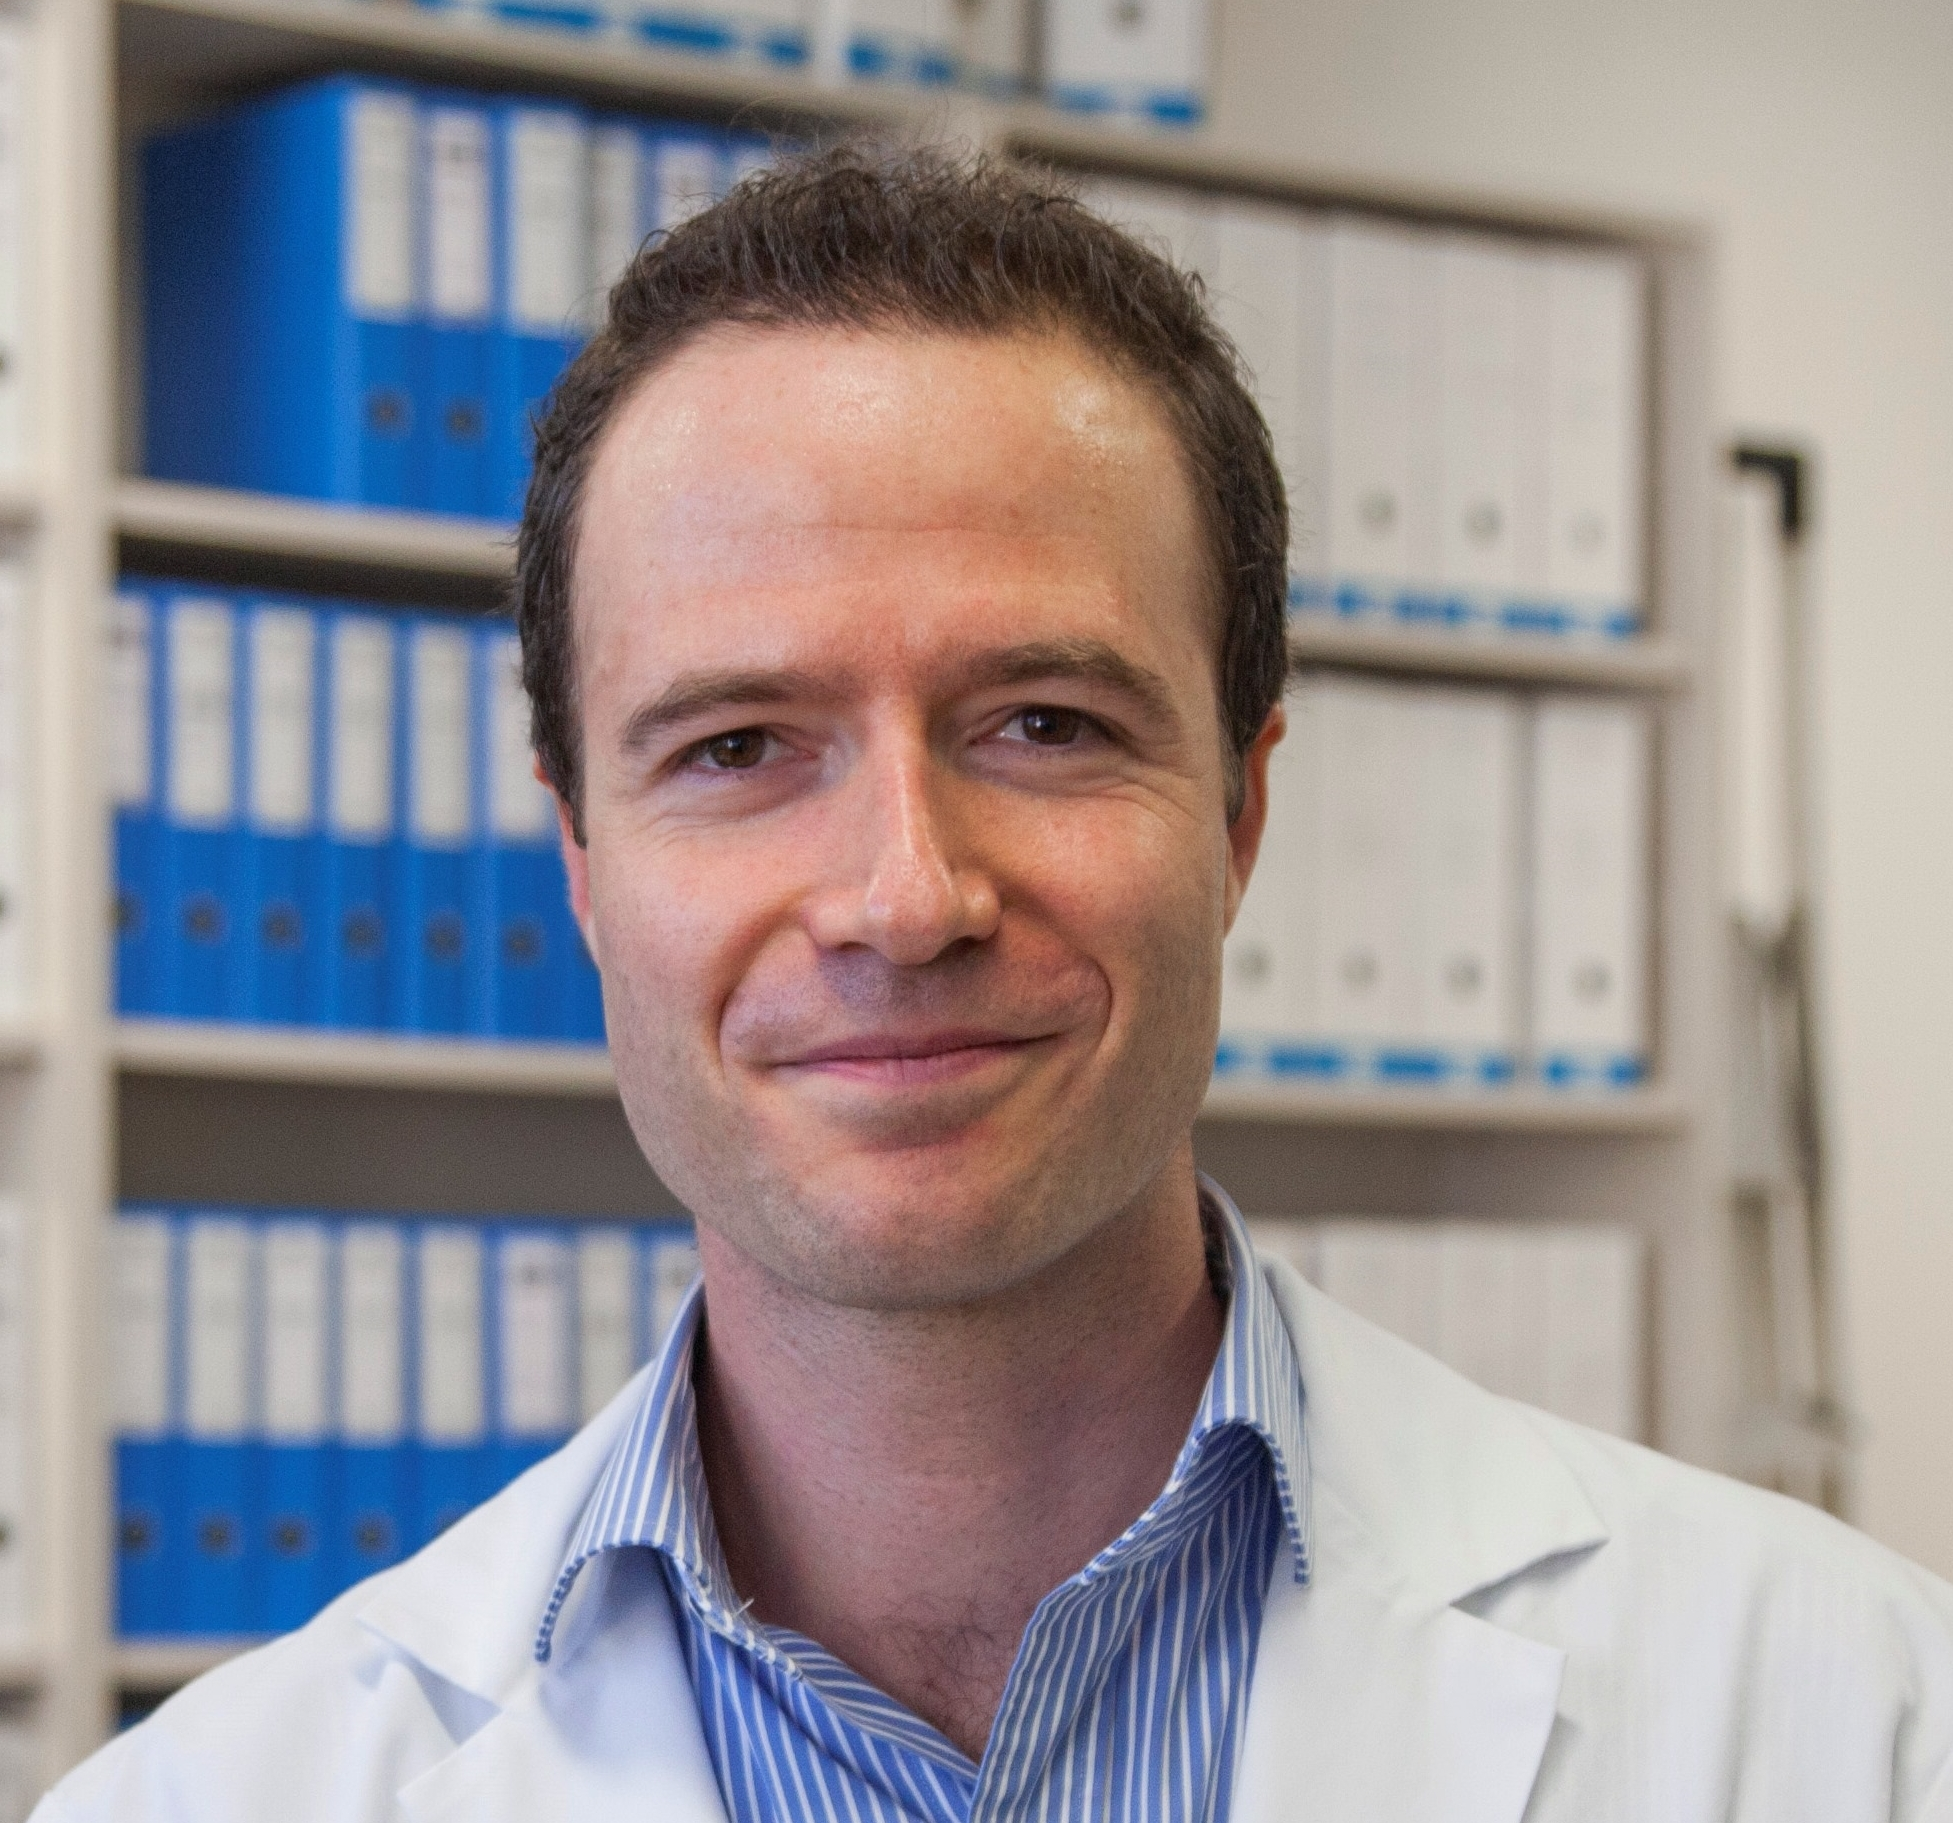 ALESSANDRO CESCHI, M.D., FEAPCCT   Ente Ospedaliero Cantonale and University Hospital Zurich, Switzerland